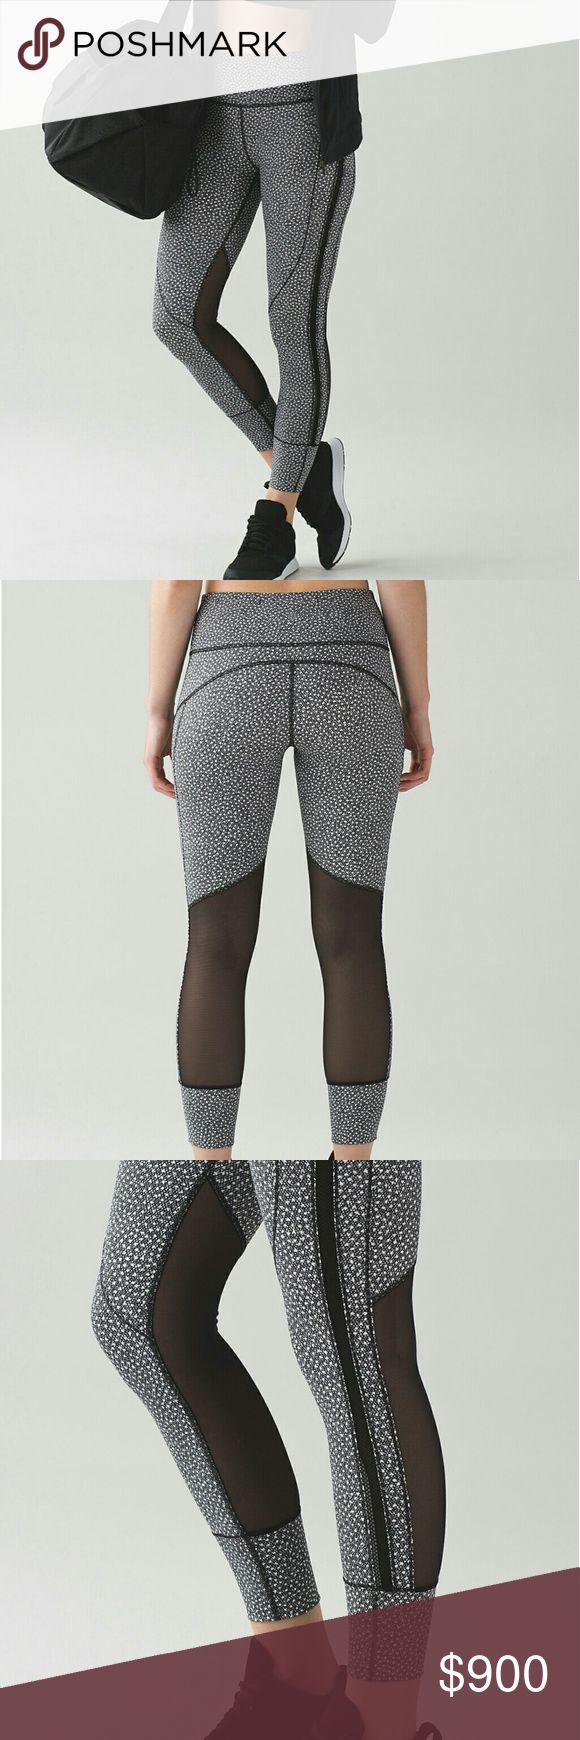 SALE NWT $59 Lululemon Hi Rise Fizz Tight 2,4,6,10 Online now at lululemon.com insider sale. $59,down from $118. Black white Frozen face pattern, Luxreme and mash, hi rise, 7/8.  IMO great deal for lulu addicts on a budget :) sizes 2,4,6& 10 avai.FINAL SALE no returns or exchanges lululemon athletica Pants